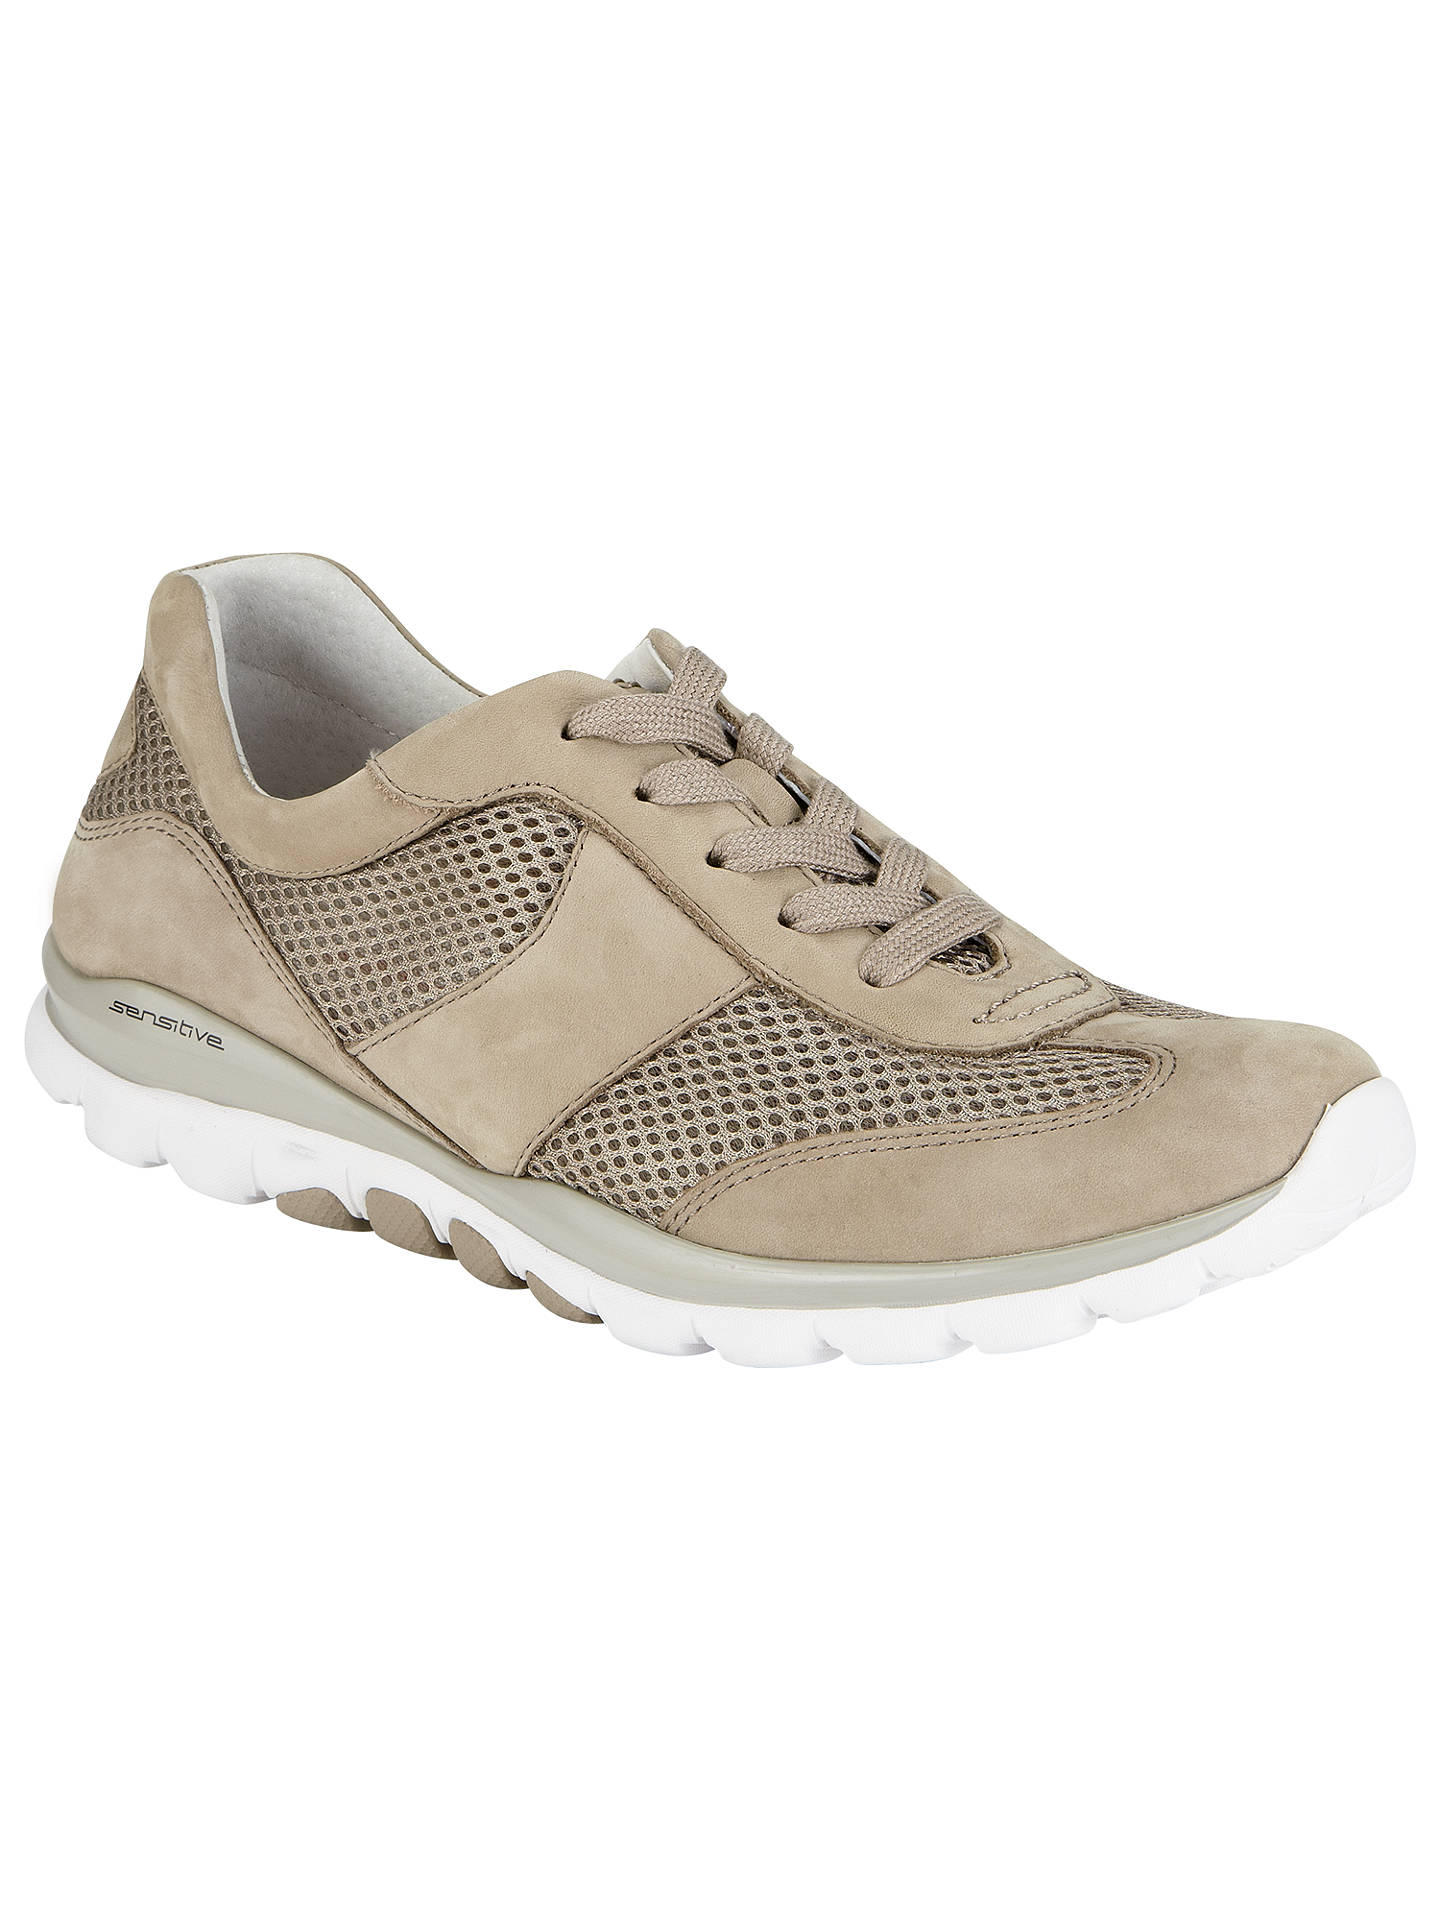 2739df605c3c3 Buy Gabor Helen Nubuck Extra Wide Fit Trainers, Beige, 3 Online at  johnlewis.